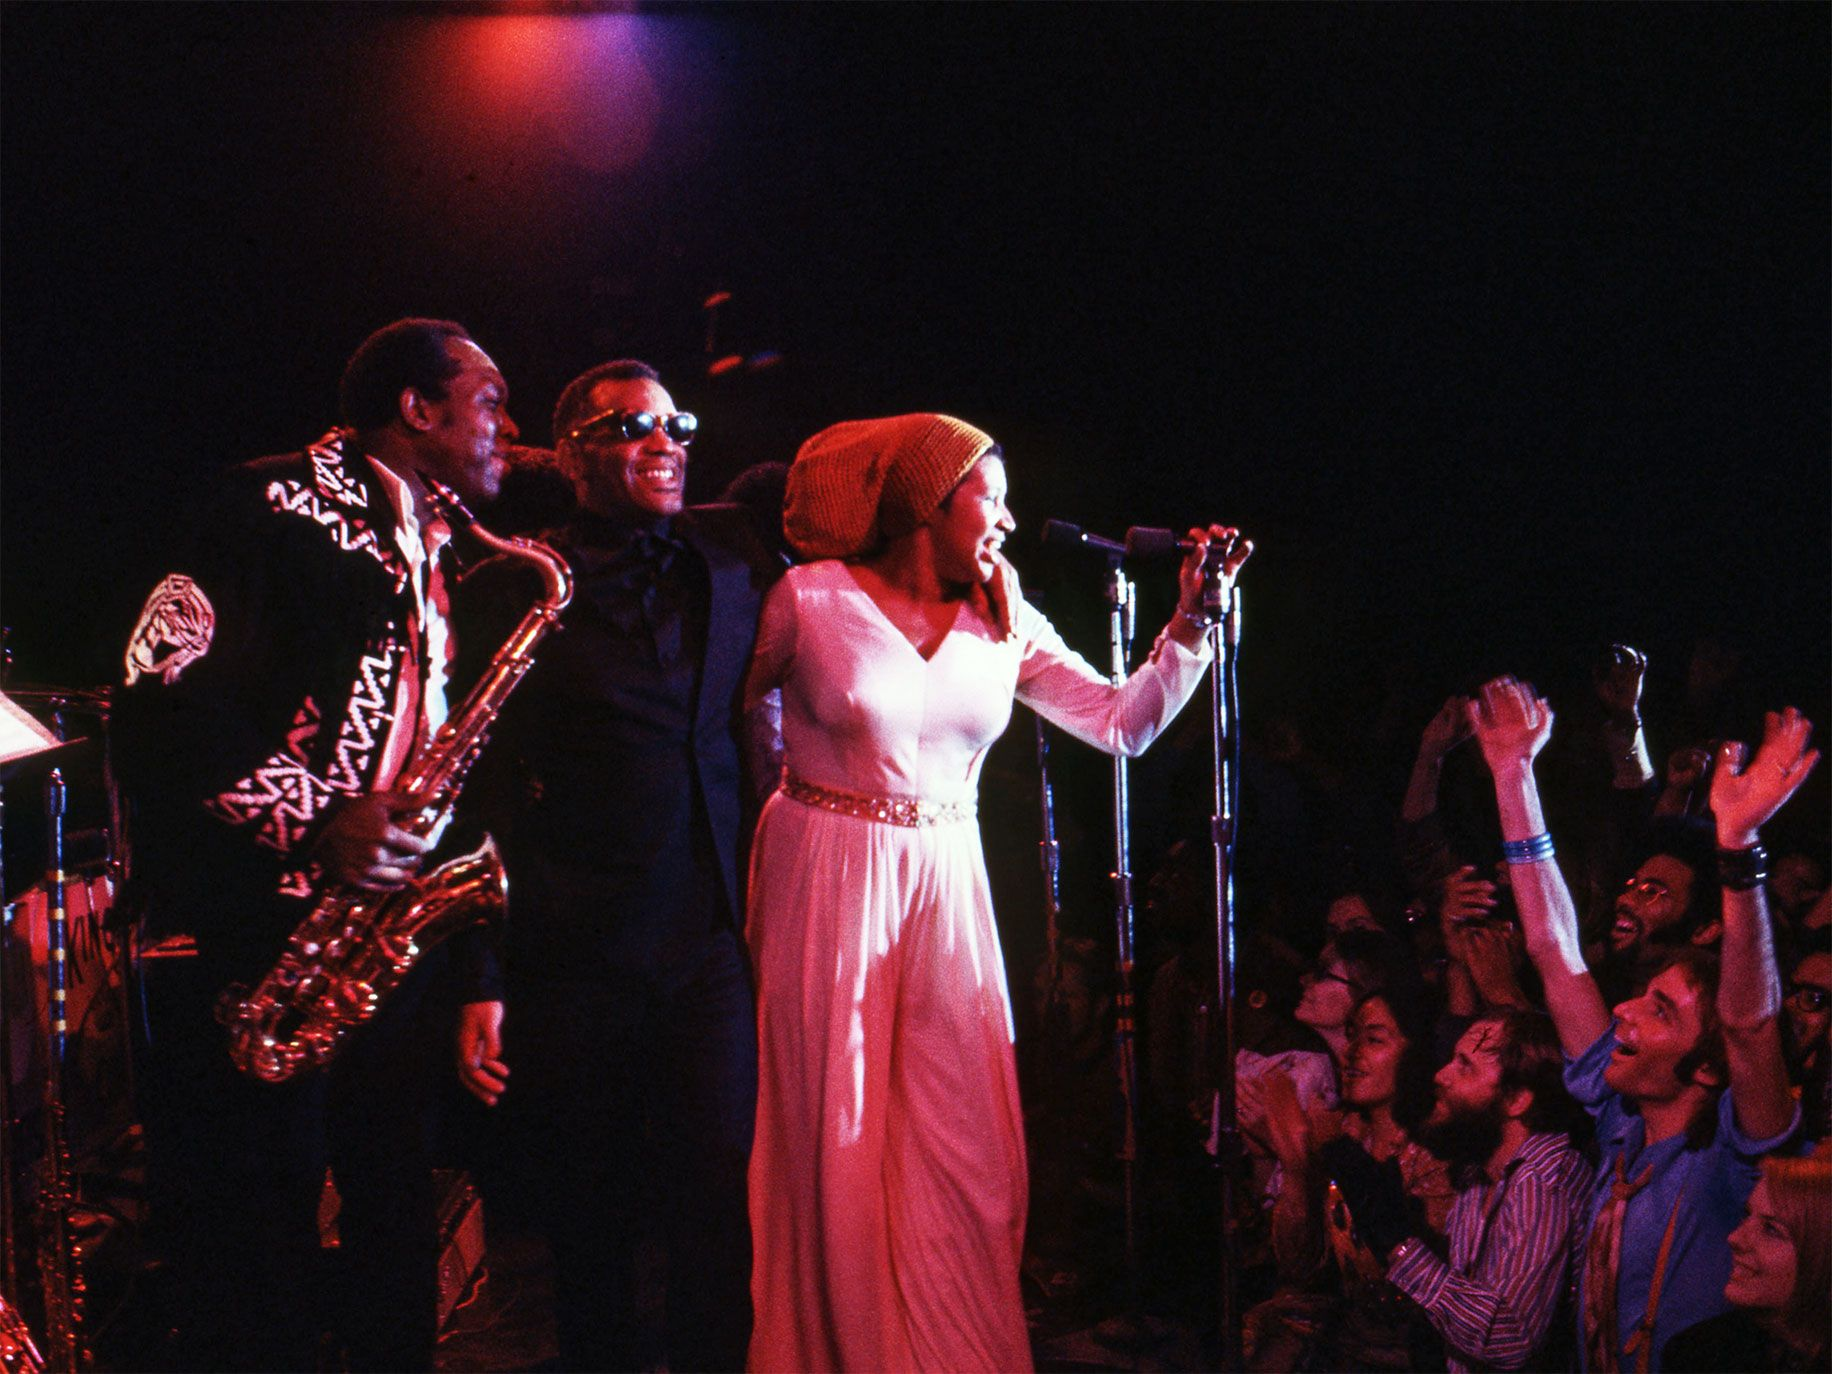 King Curtis, Ray Charles (center), and Aretha Franklin at the Fillmore West, San Francisco, 1971.